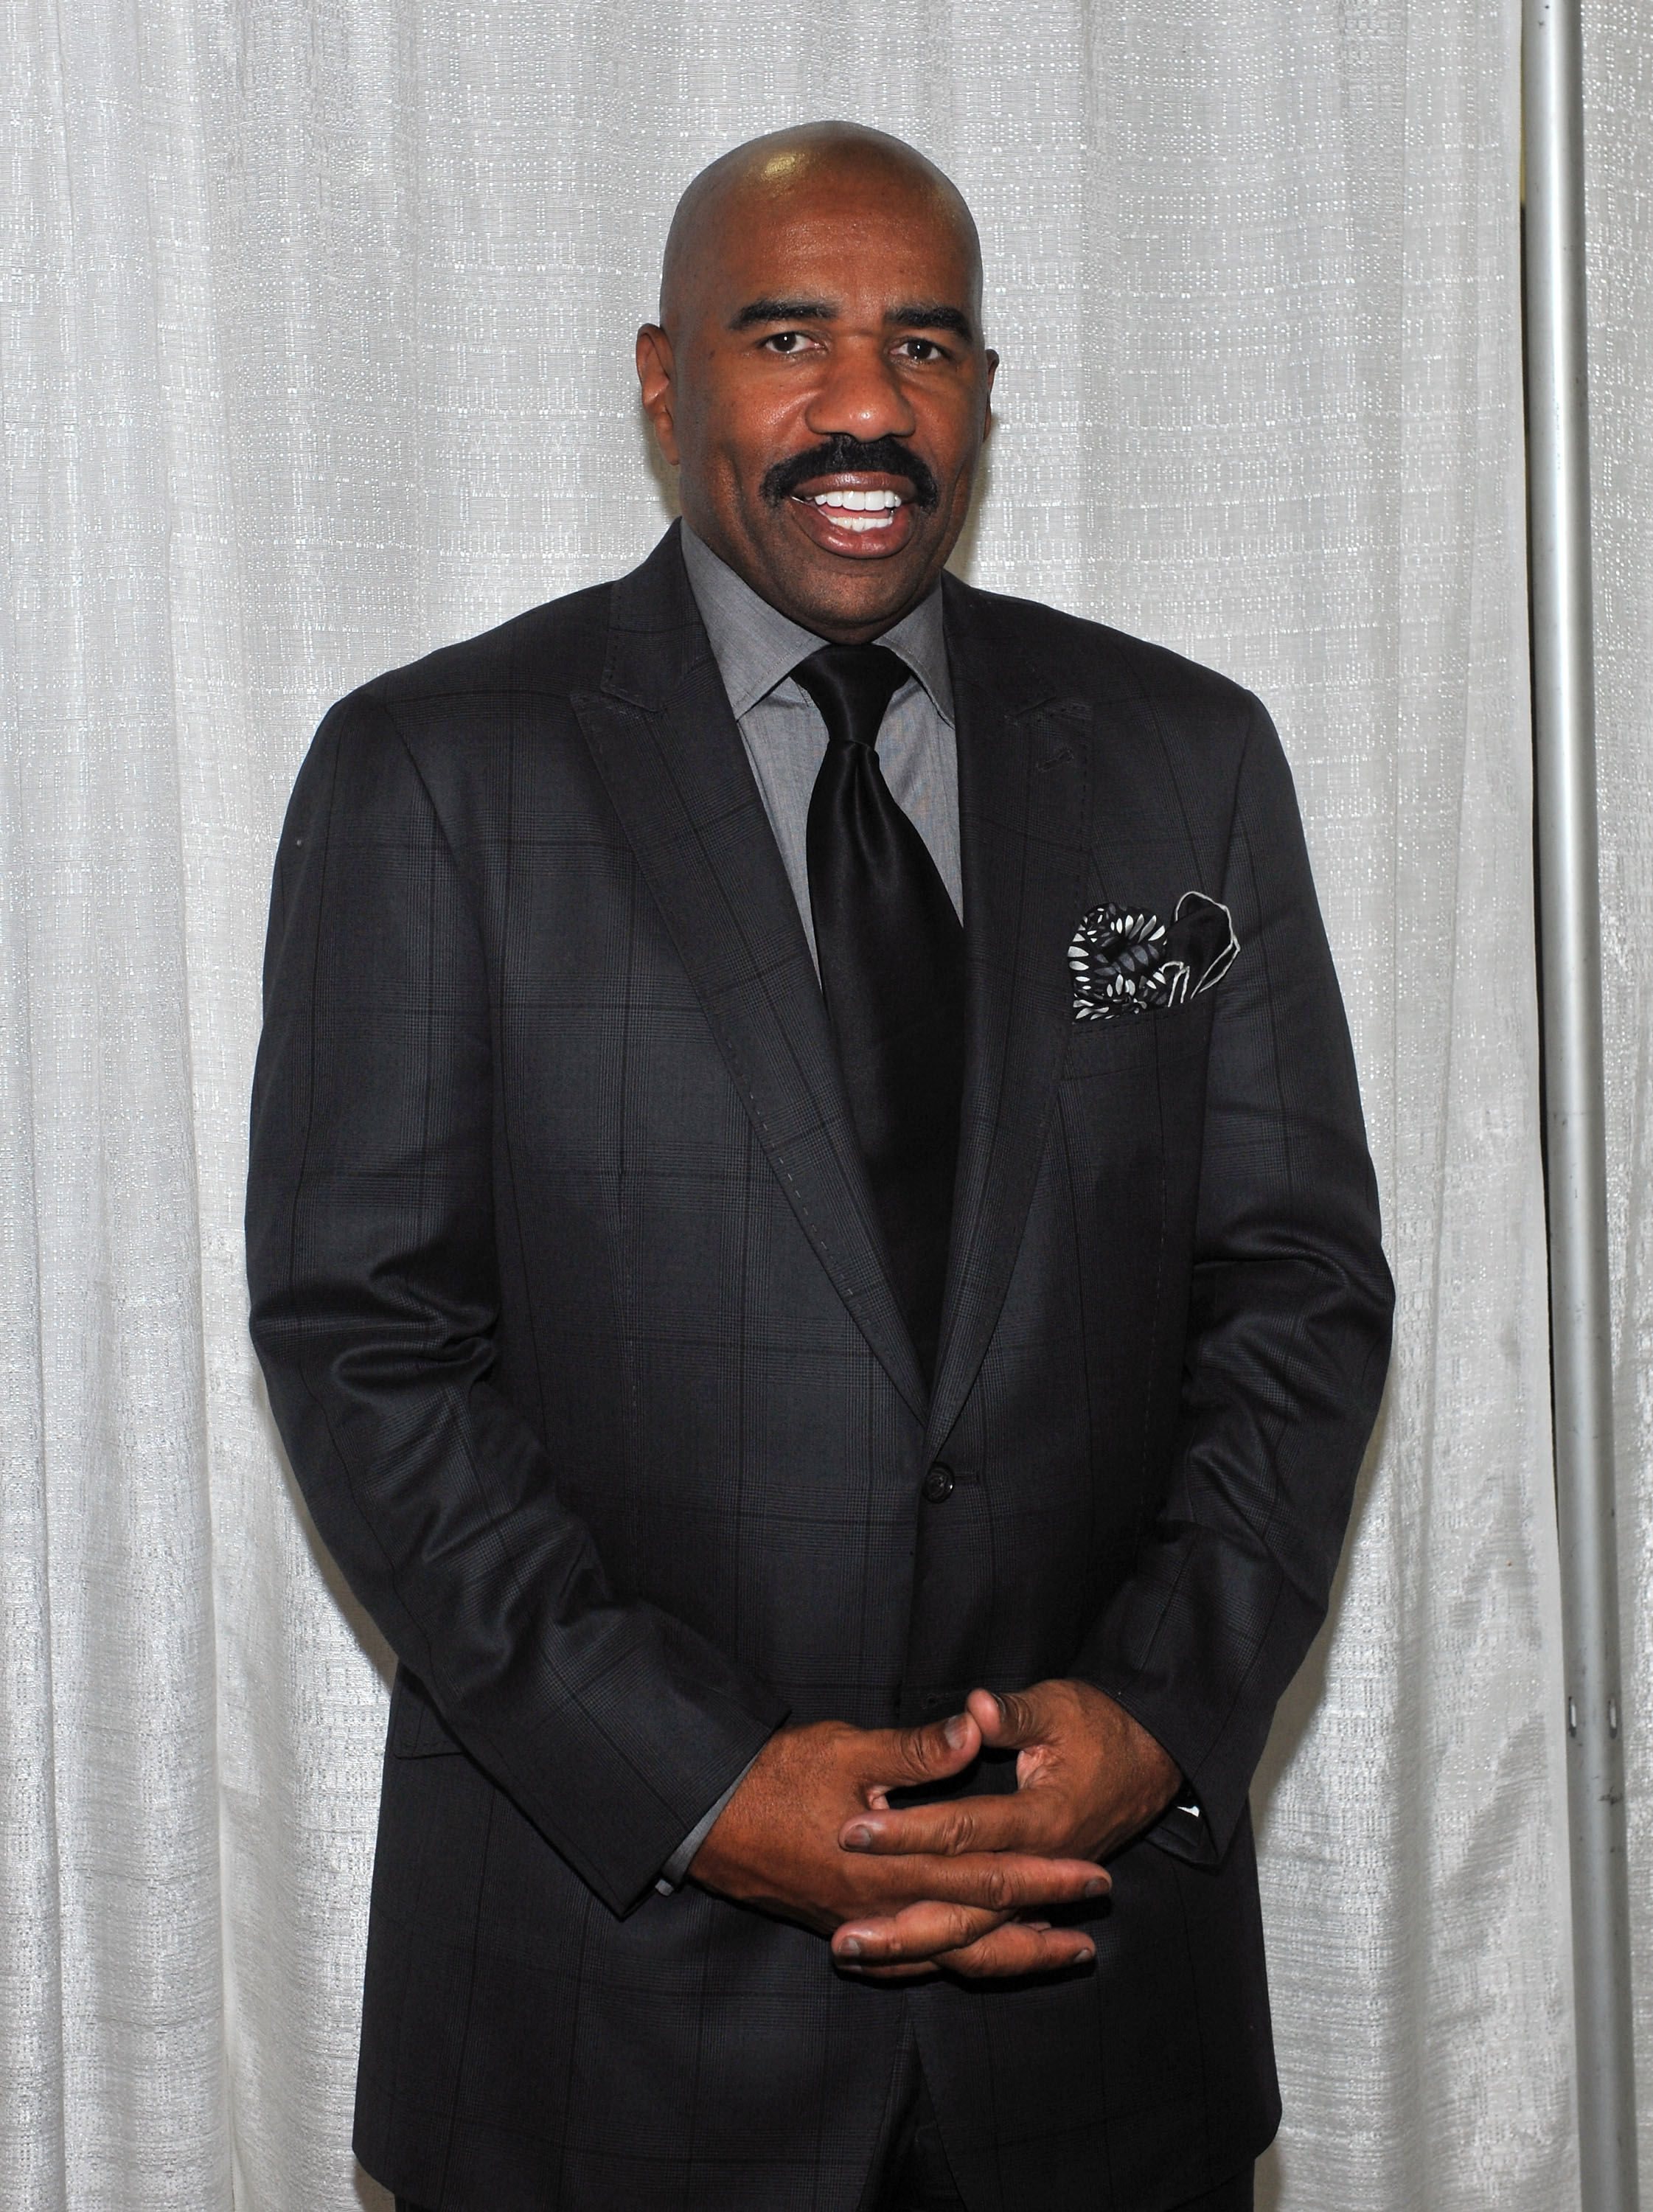 Steve Harvey at the 2011 Steve Harvey Mentoring Weekend at the Jacob Javits Center on October 7, 2011 in New York City. | Source: Getty